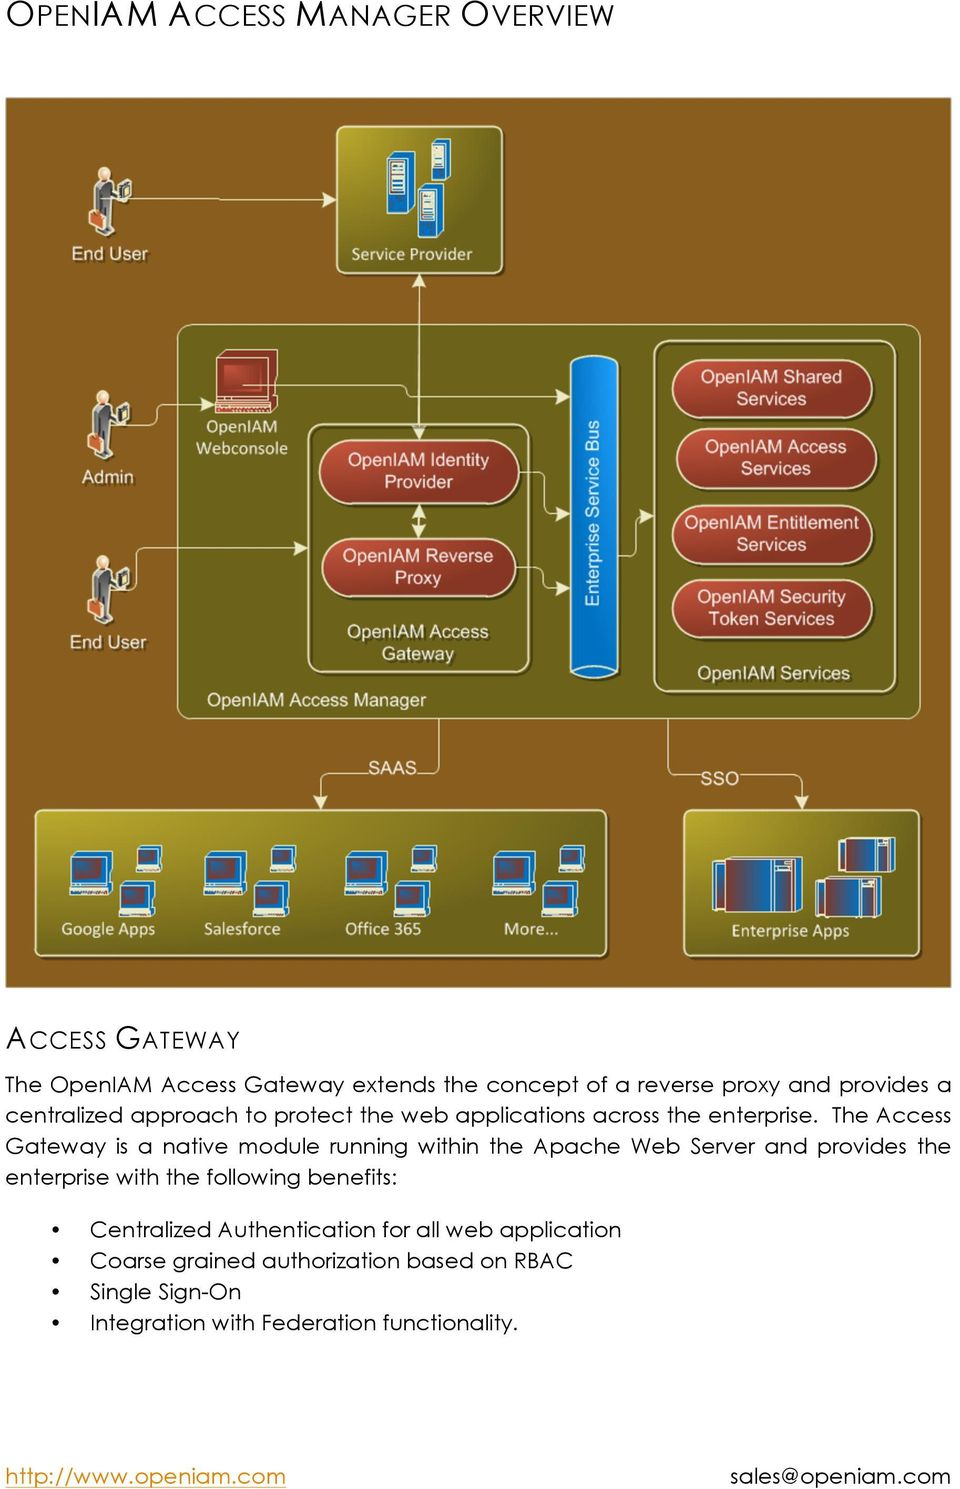 The Access Gateway is a native module running within the Apache Web Server and provides the enterprise with the following